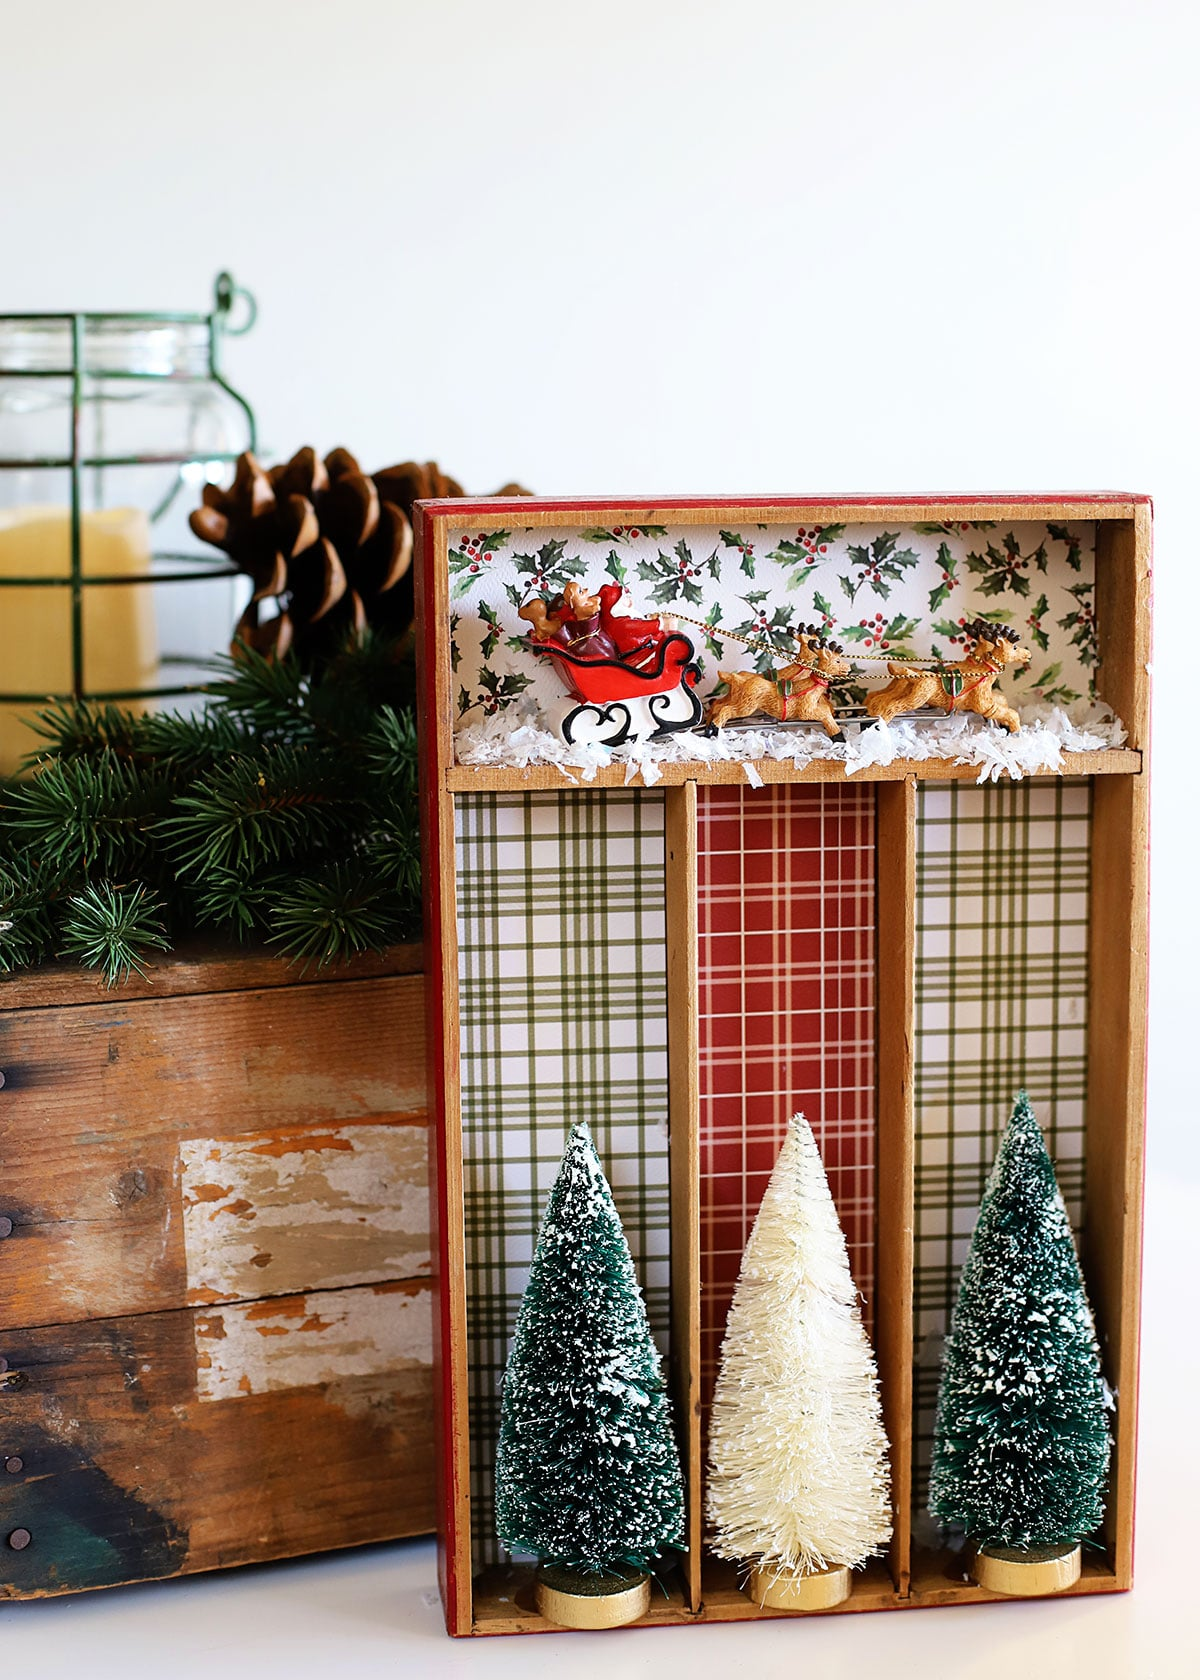 Upcycled Christmas Decor from thrift store silverware tray